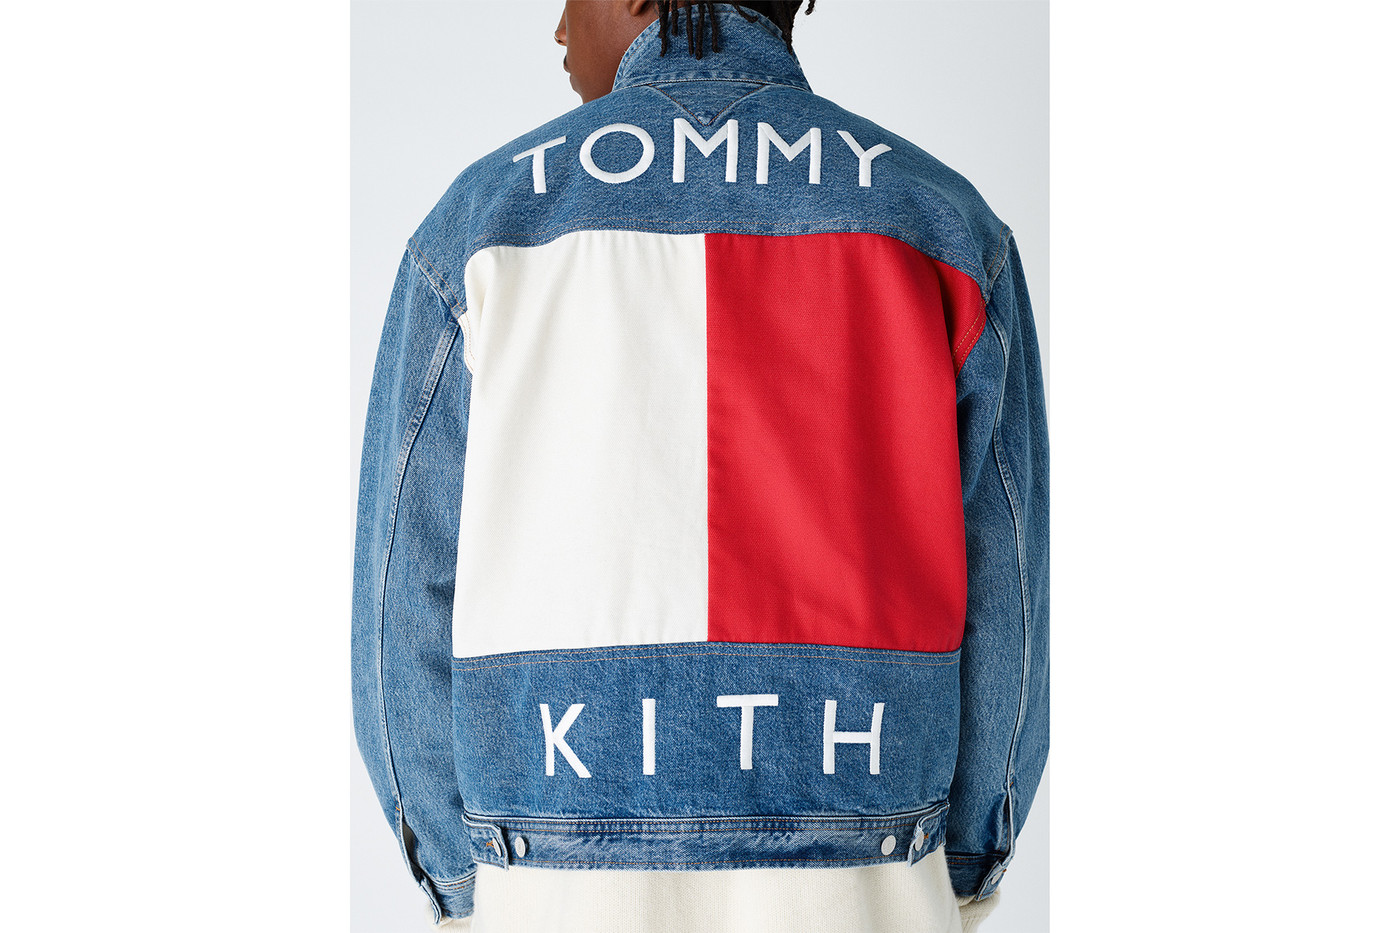 - Tommy Hilfiger x KITH Travel Back to the 90..